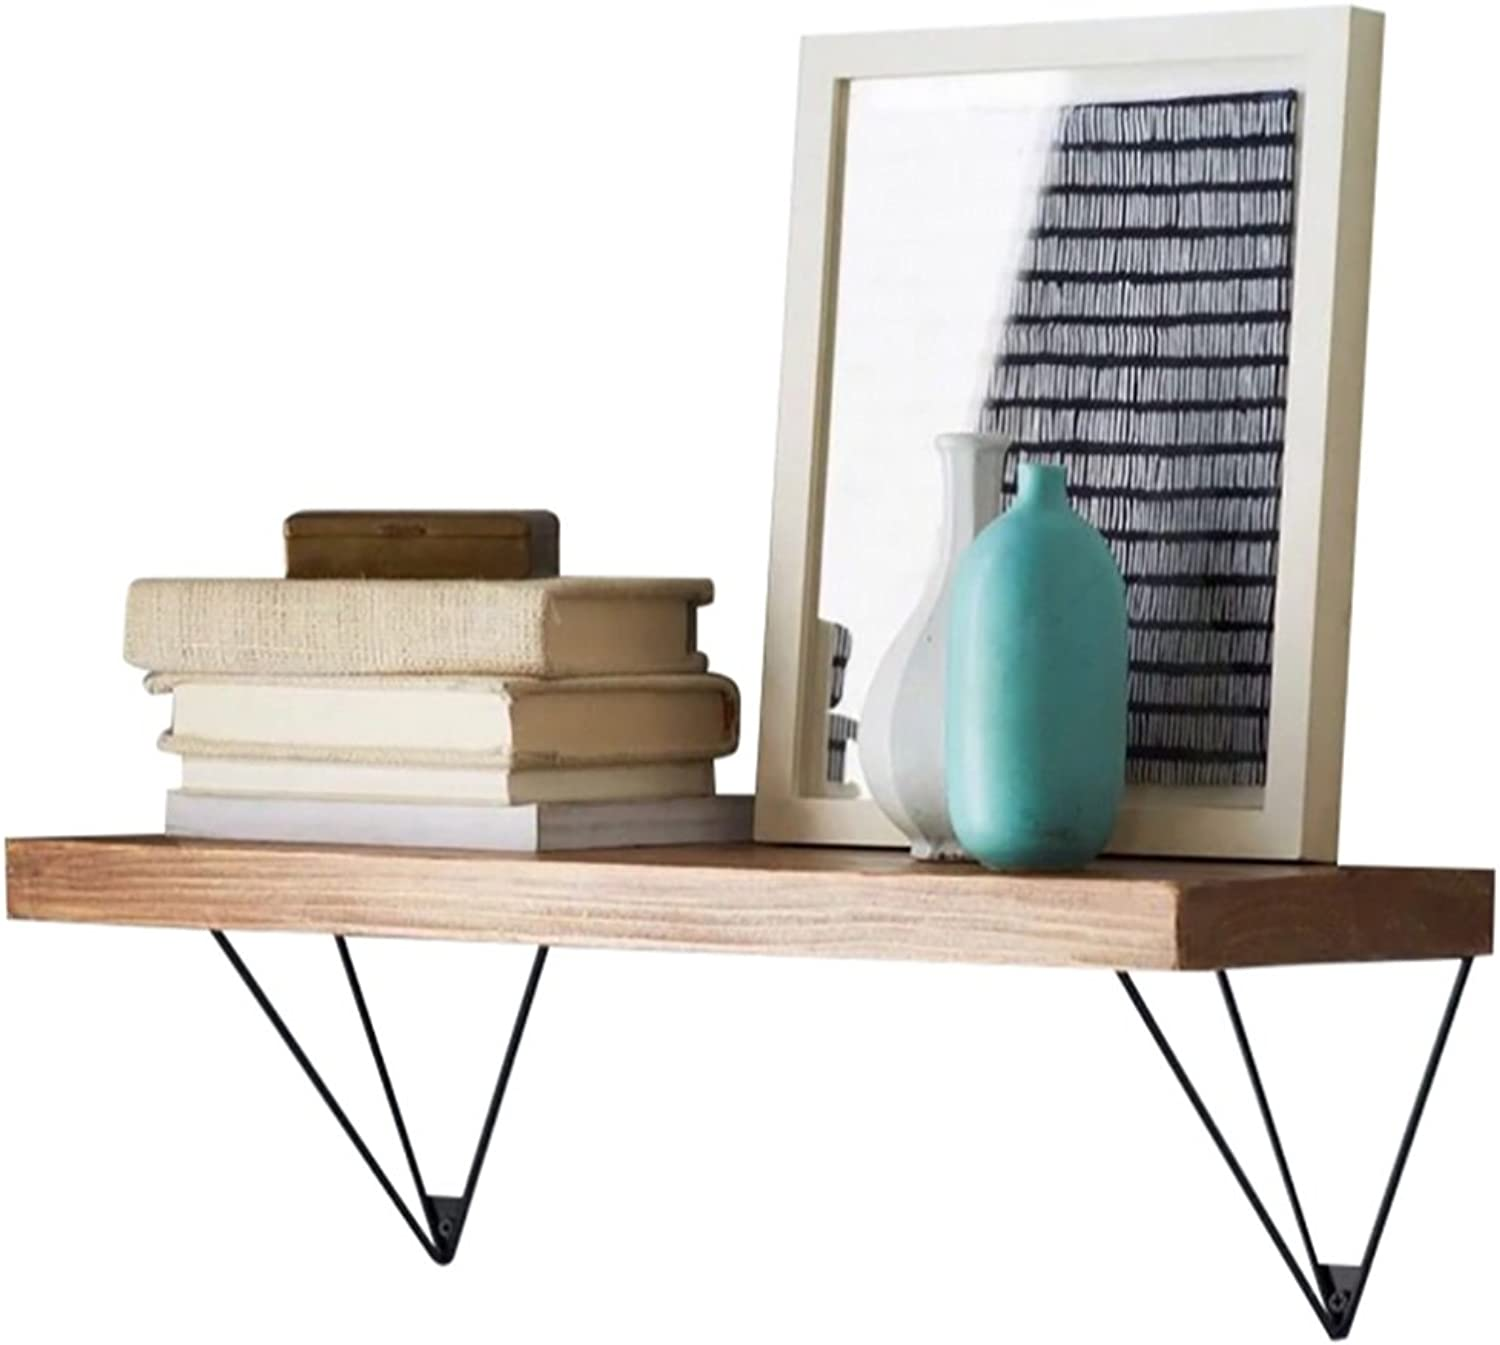 Decorative Accessories Single Layer Wall Mounted Shelves Solid Wood Shelf Bookshelf Wall Hanging Rack Wall Storage Board Living Room Kitchen Wine Rack Wall Decoration Floating Shelves